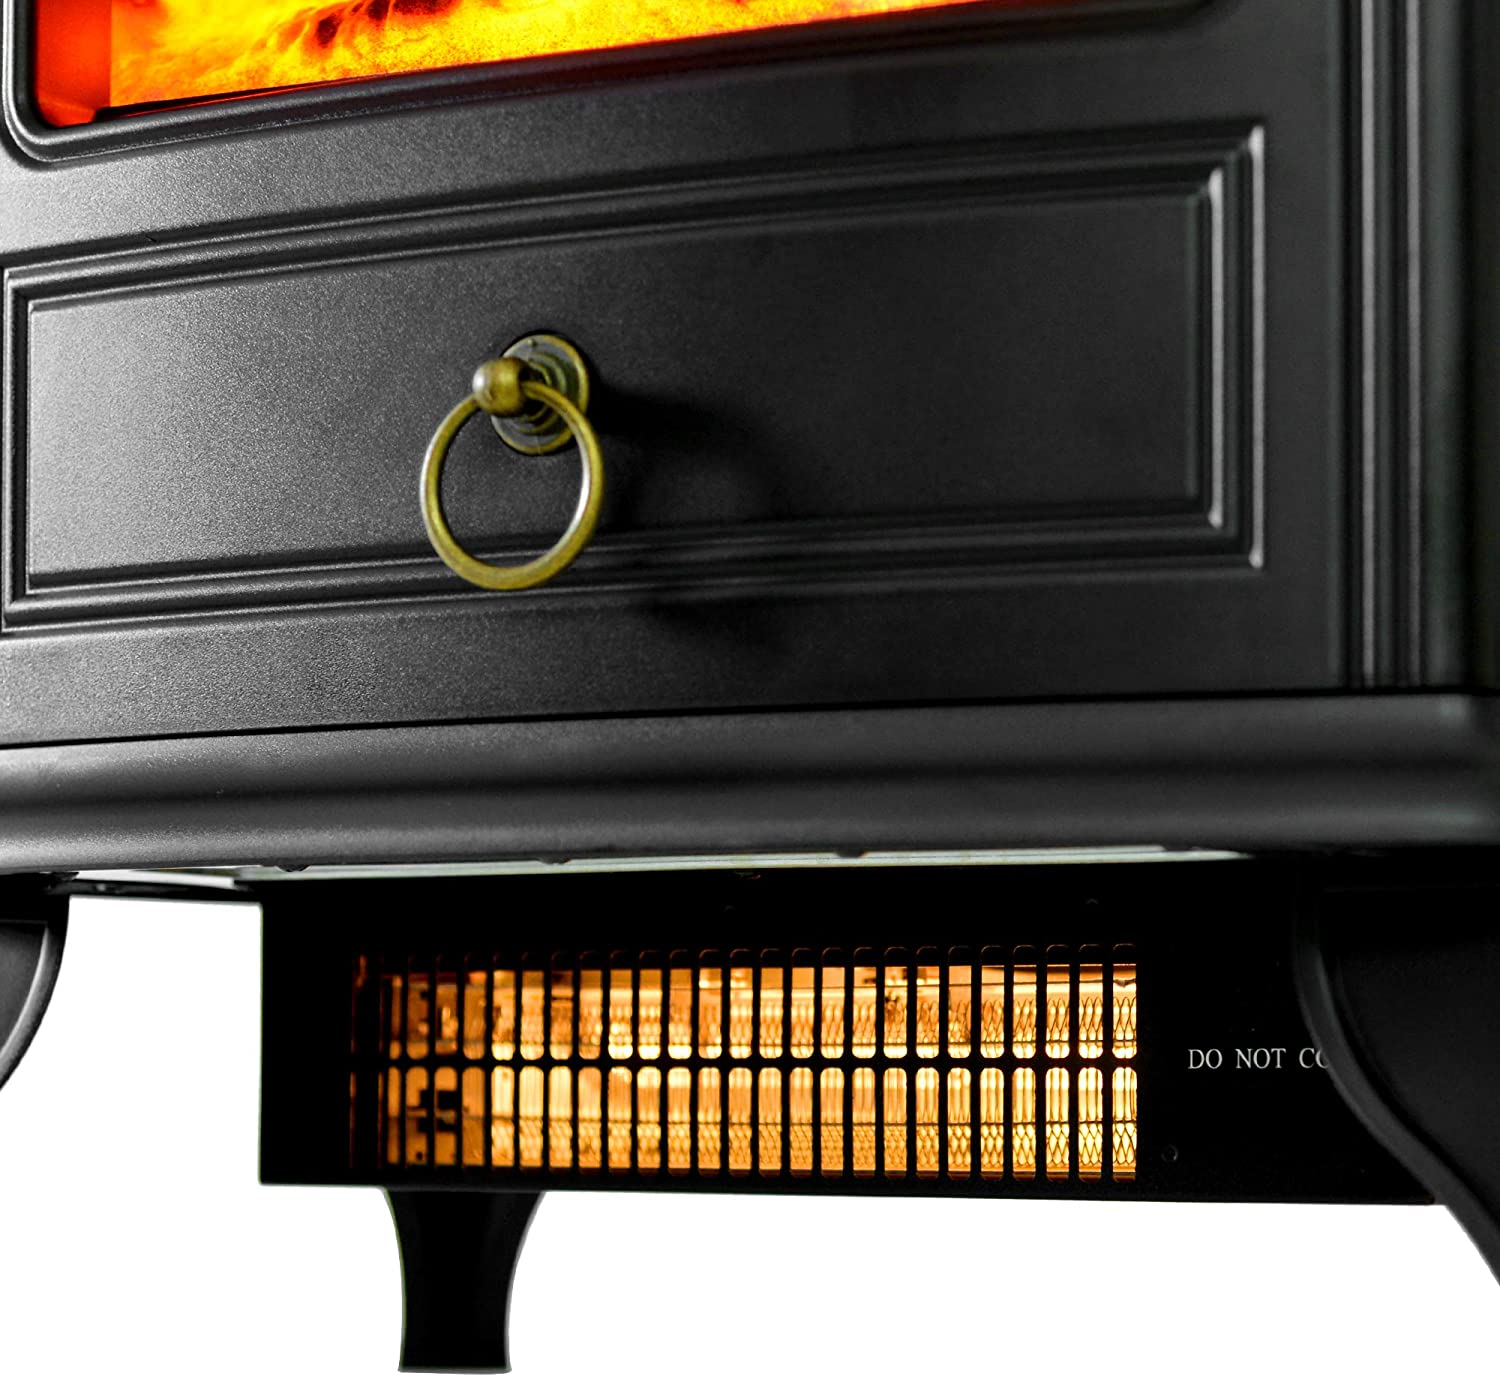 Electric Fireplace Compact Stove 1500W with Fire Flame Effect Freestanding Adjustable Thermostat Control Portable Electric Log Wood Burner Effect 2 Heat Settings